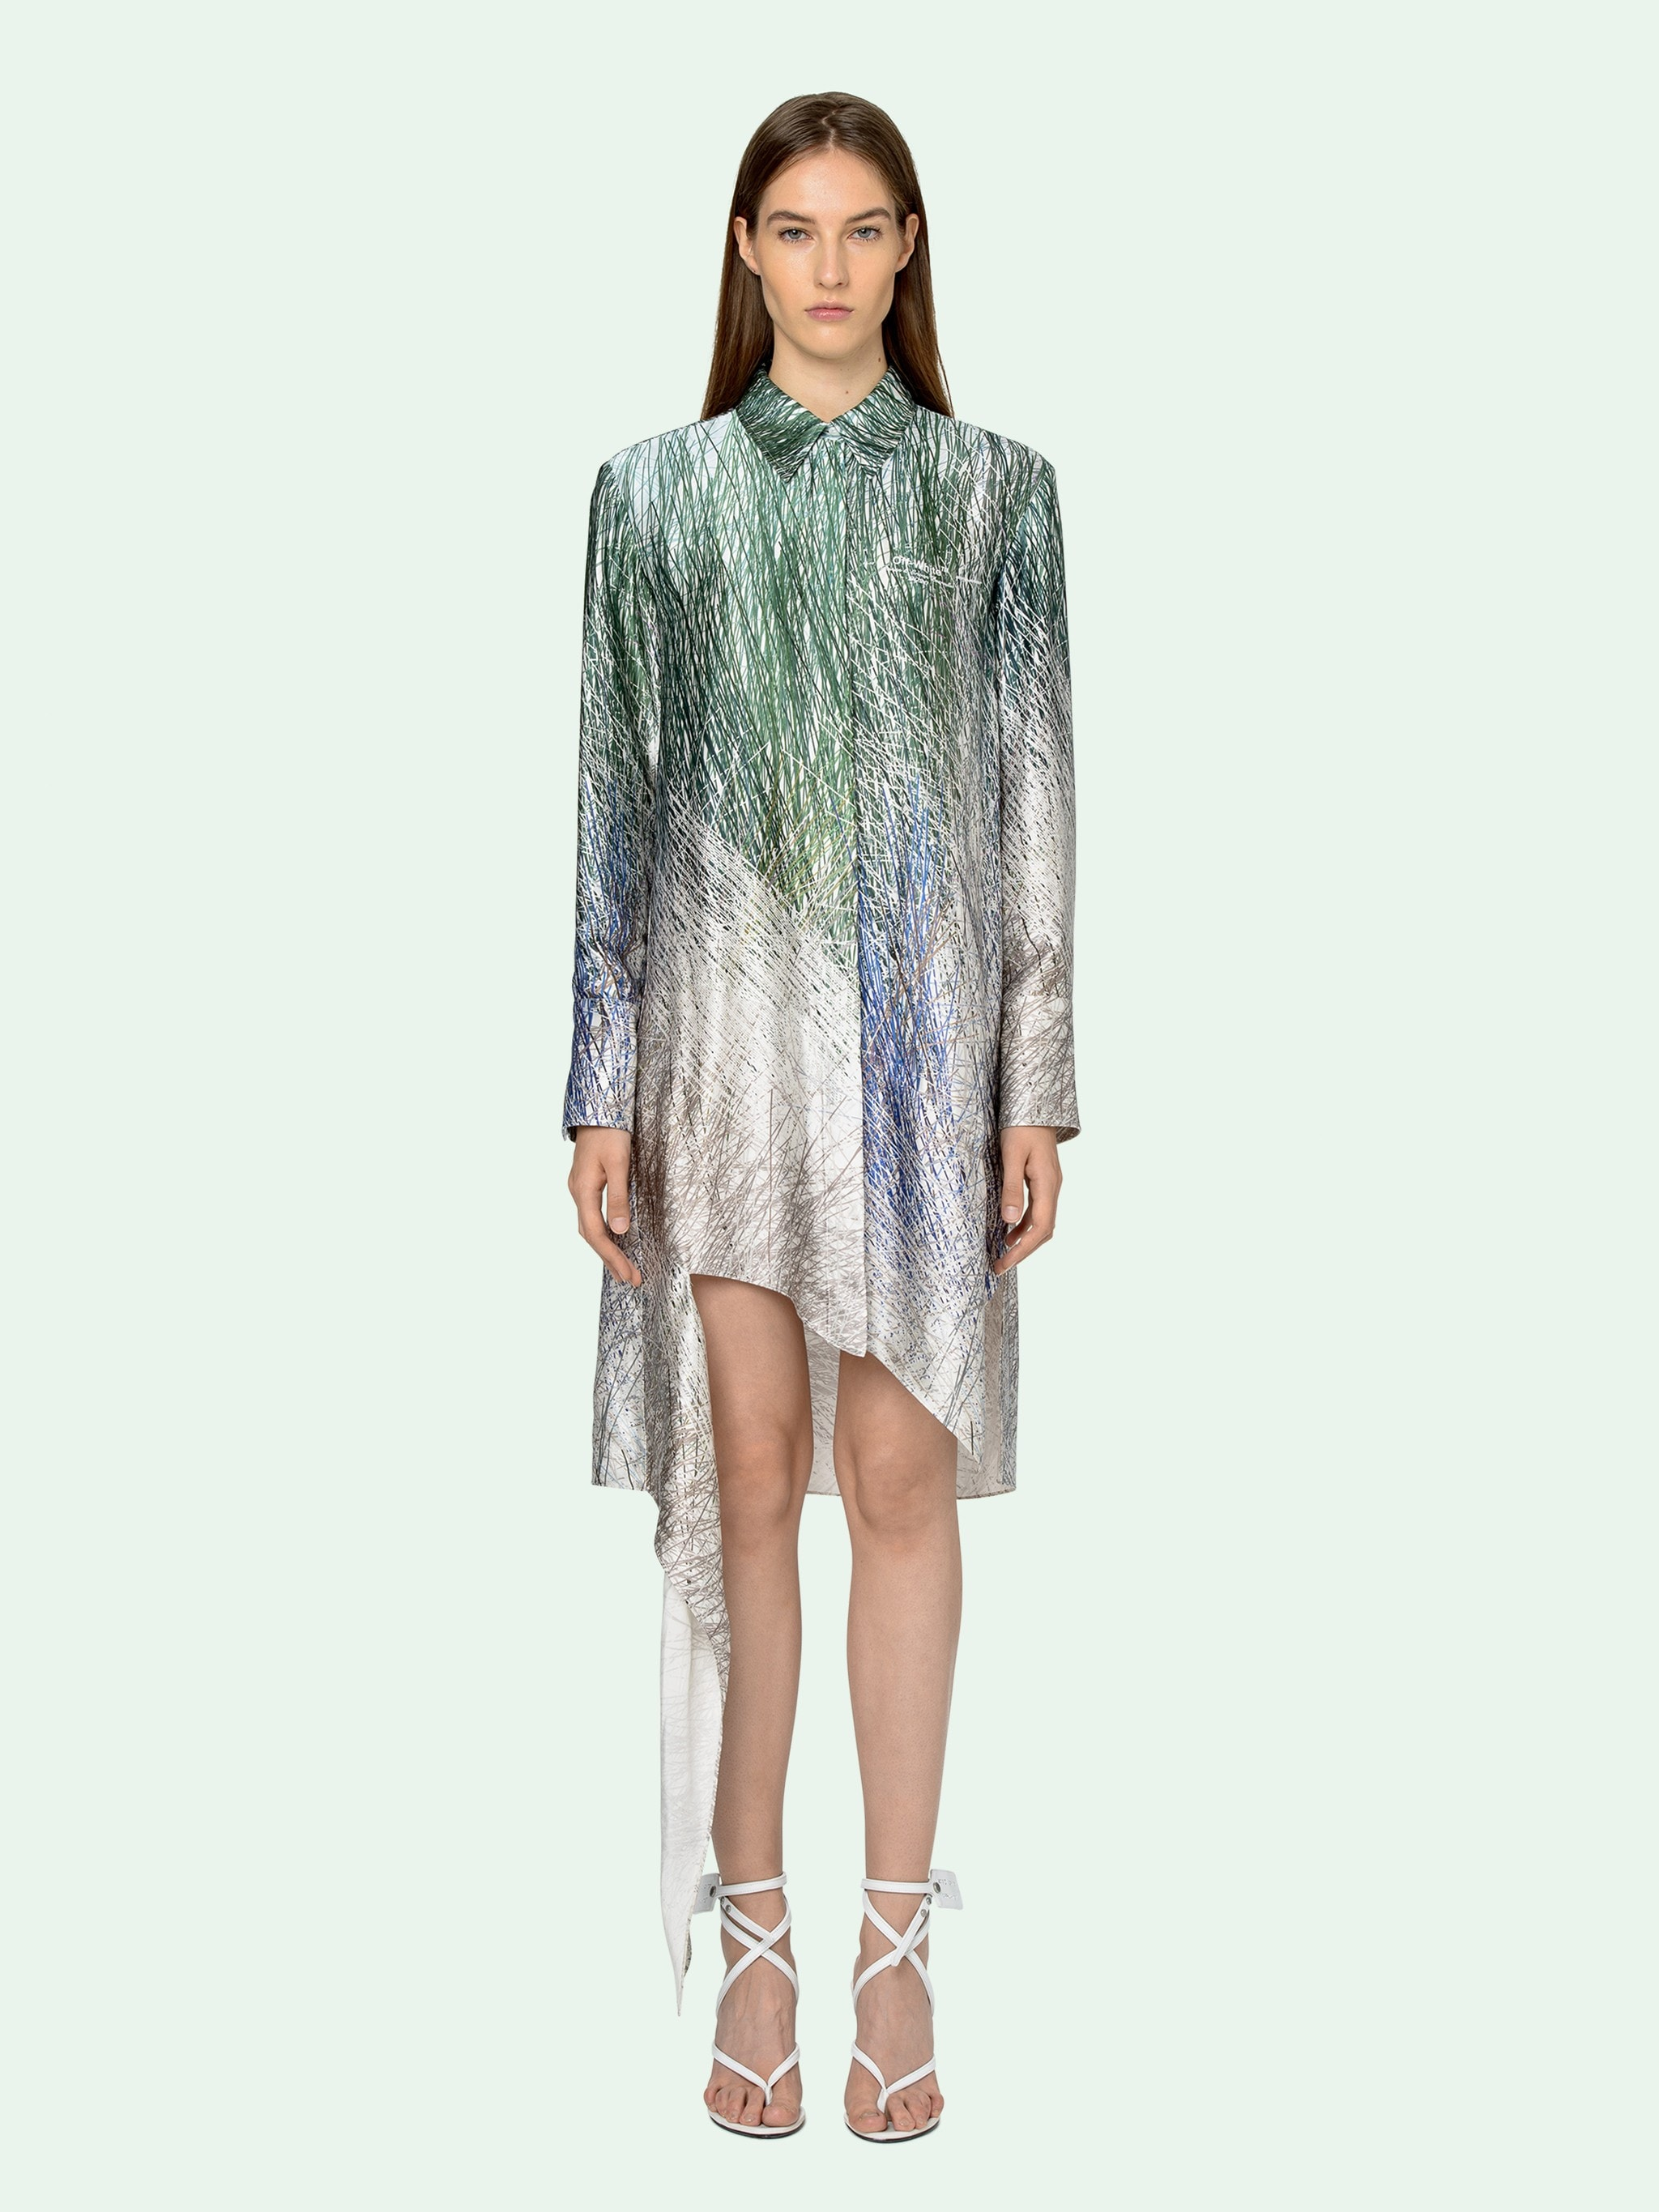 Off-White™ BOUROULLEC SPIRAL SHIRT DRESS